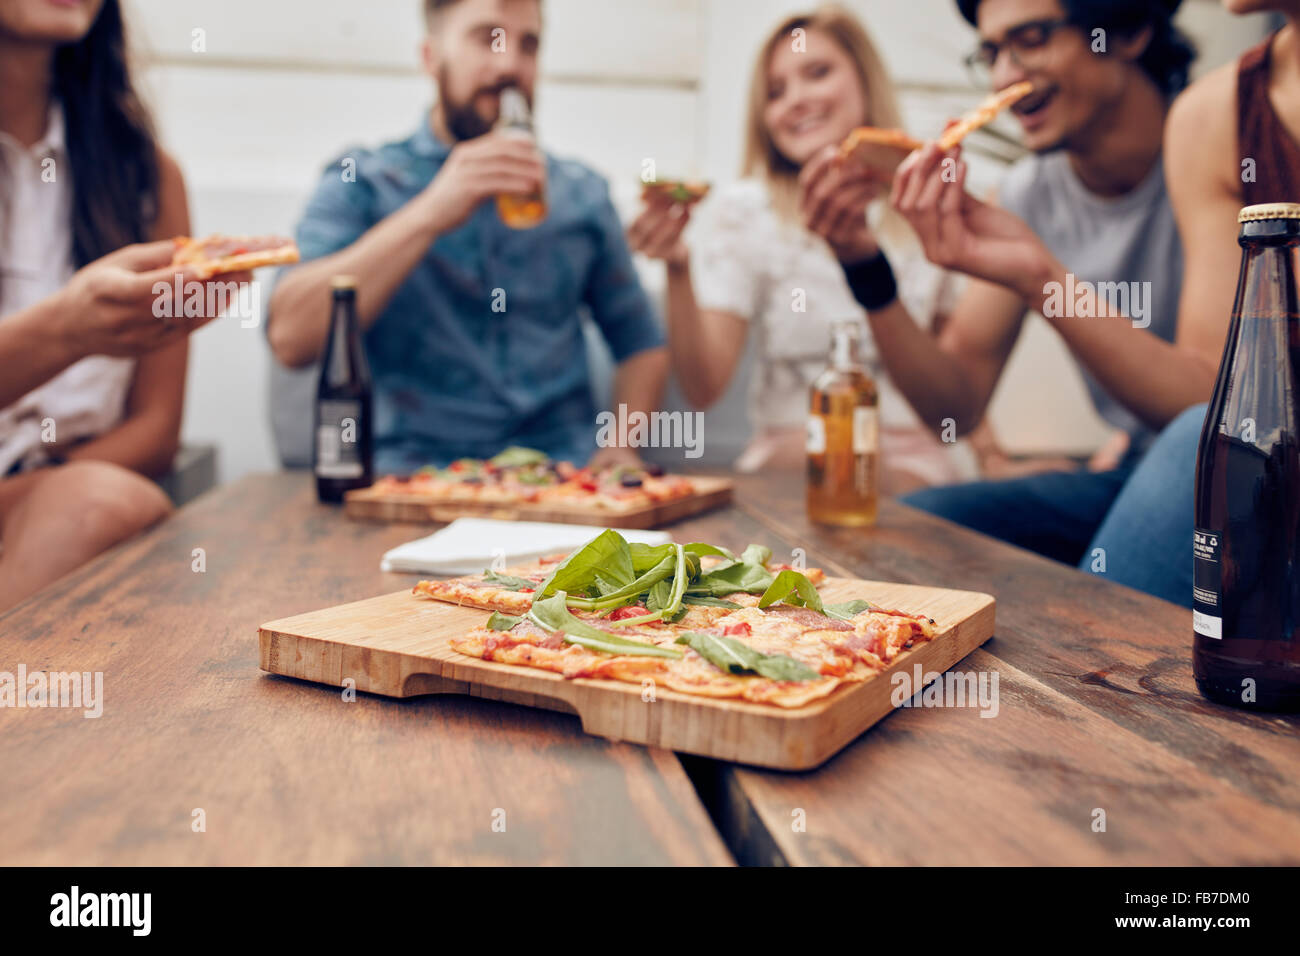 Close up shot of pizza on wooden plate with people eating and drinking in background. Group of friends gathered Stock Photo